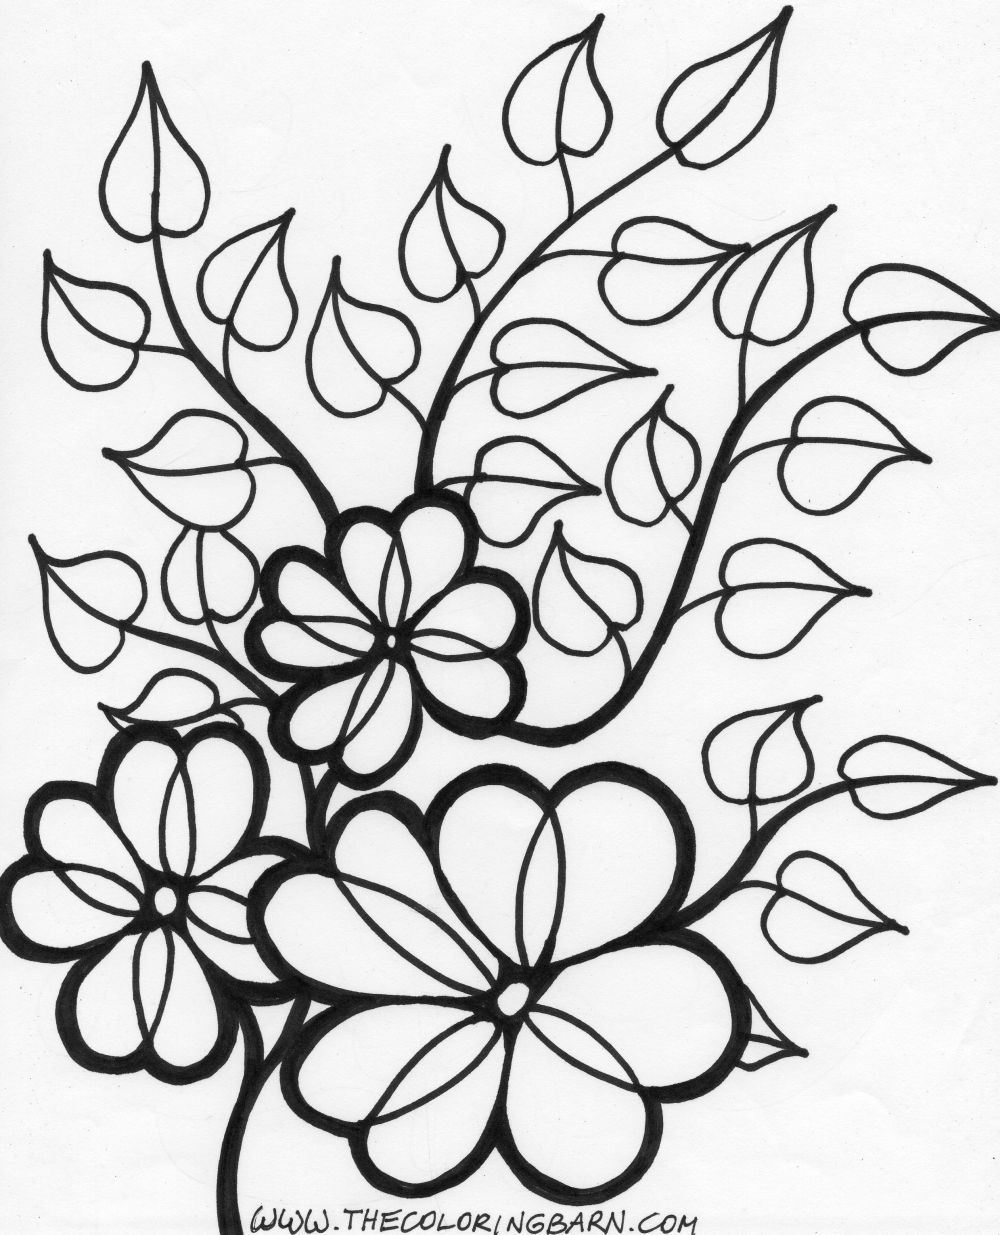 Flower coloring in pages - Flower Vines Coloring Page Wild Printable Free Coloring Pages For Kids